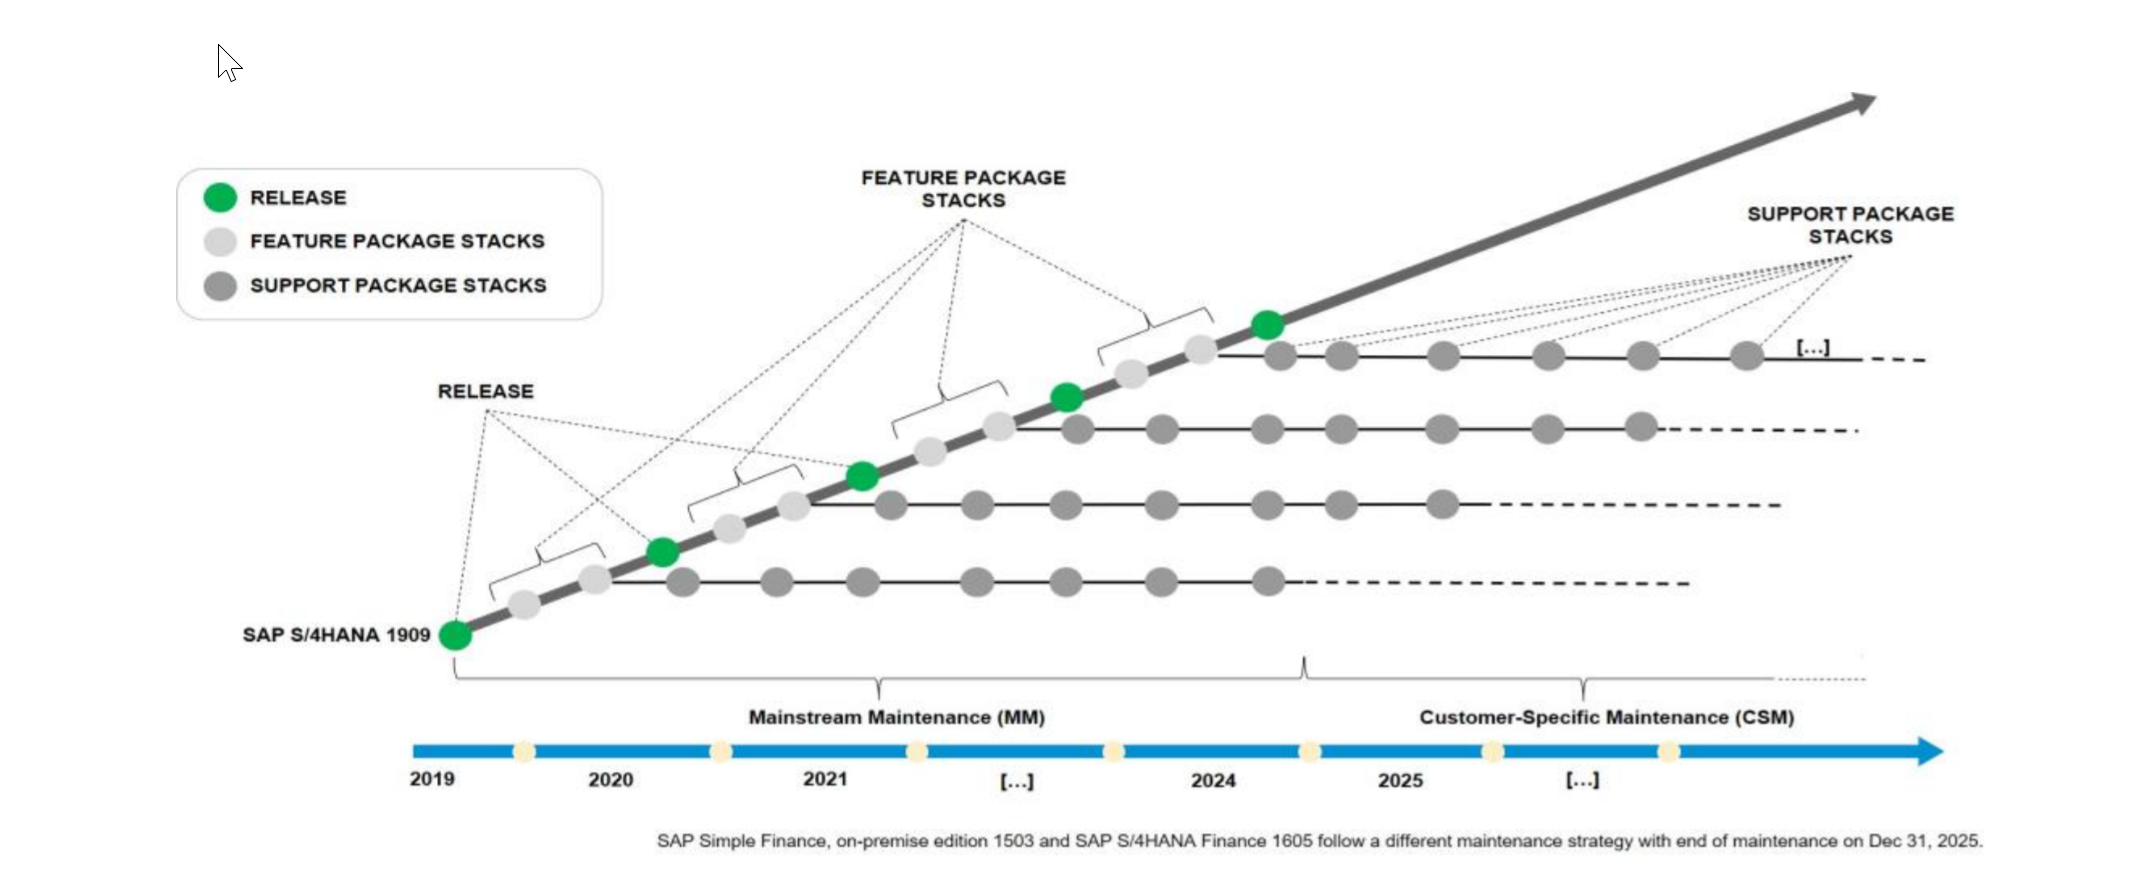 Overview%20of%20Release%20and%20Maintenance%20Strategy%20for%20SAP%20S/4HANA